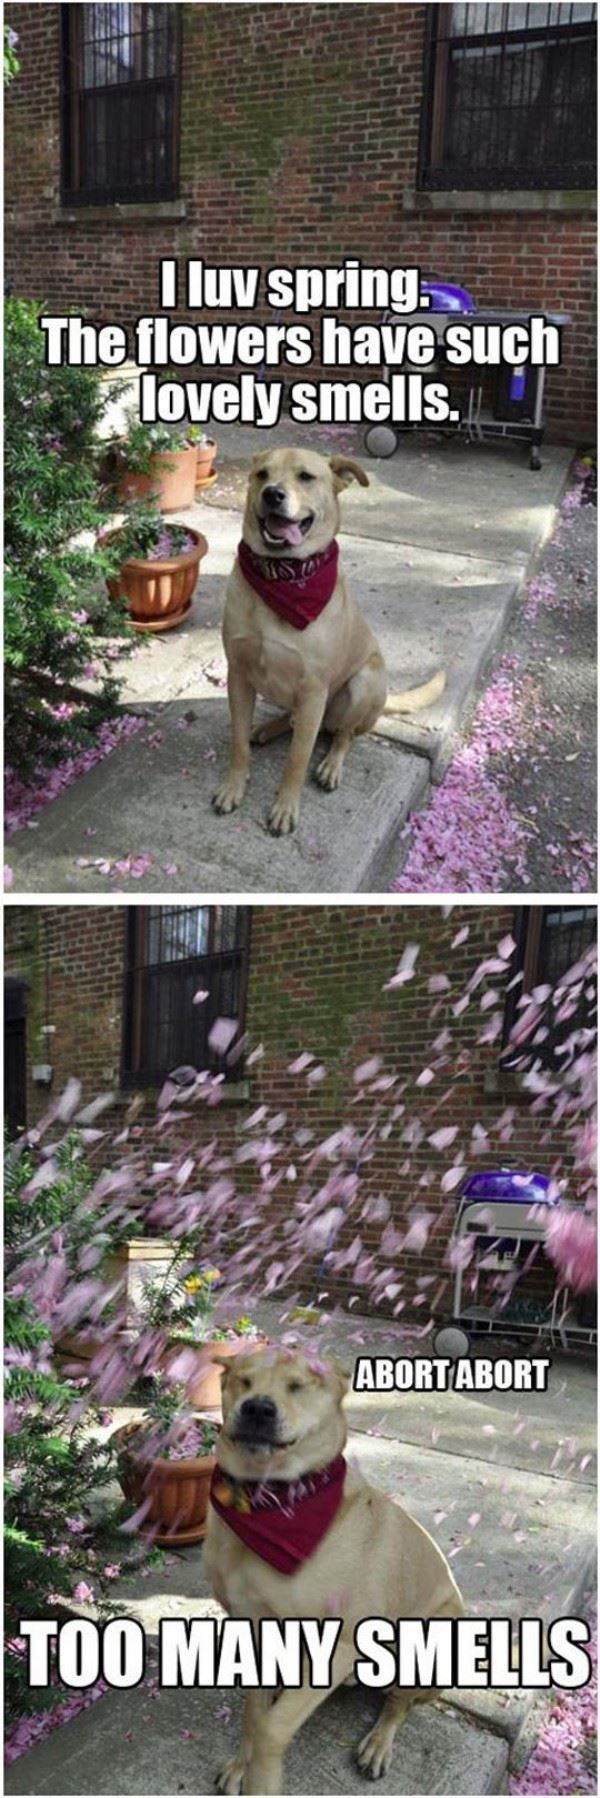 I Luv Spring - Dog humor